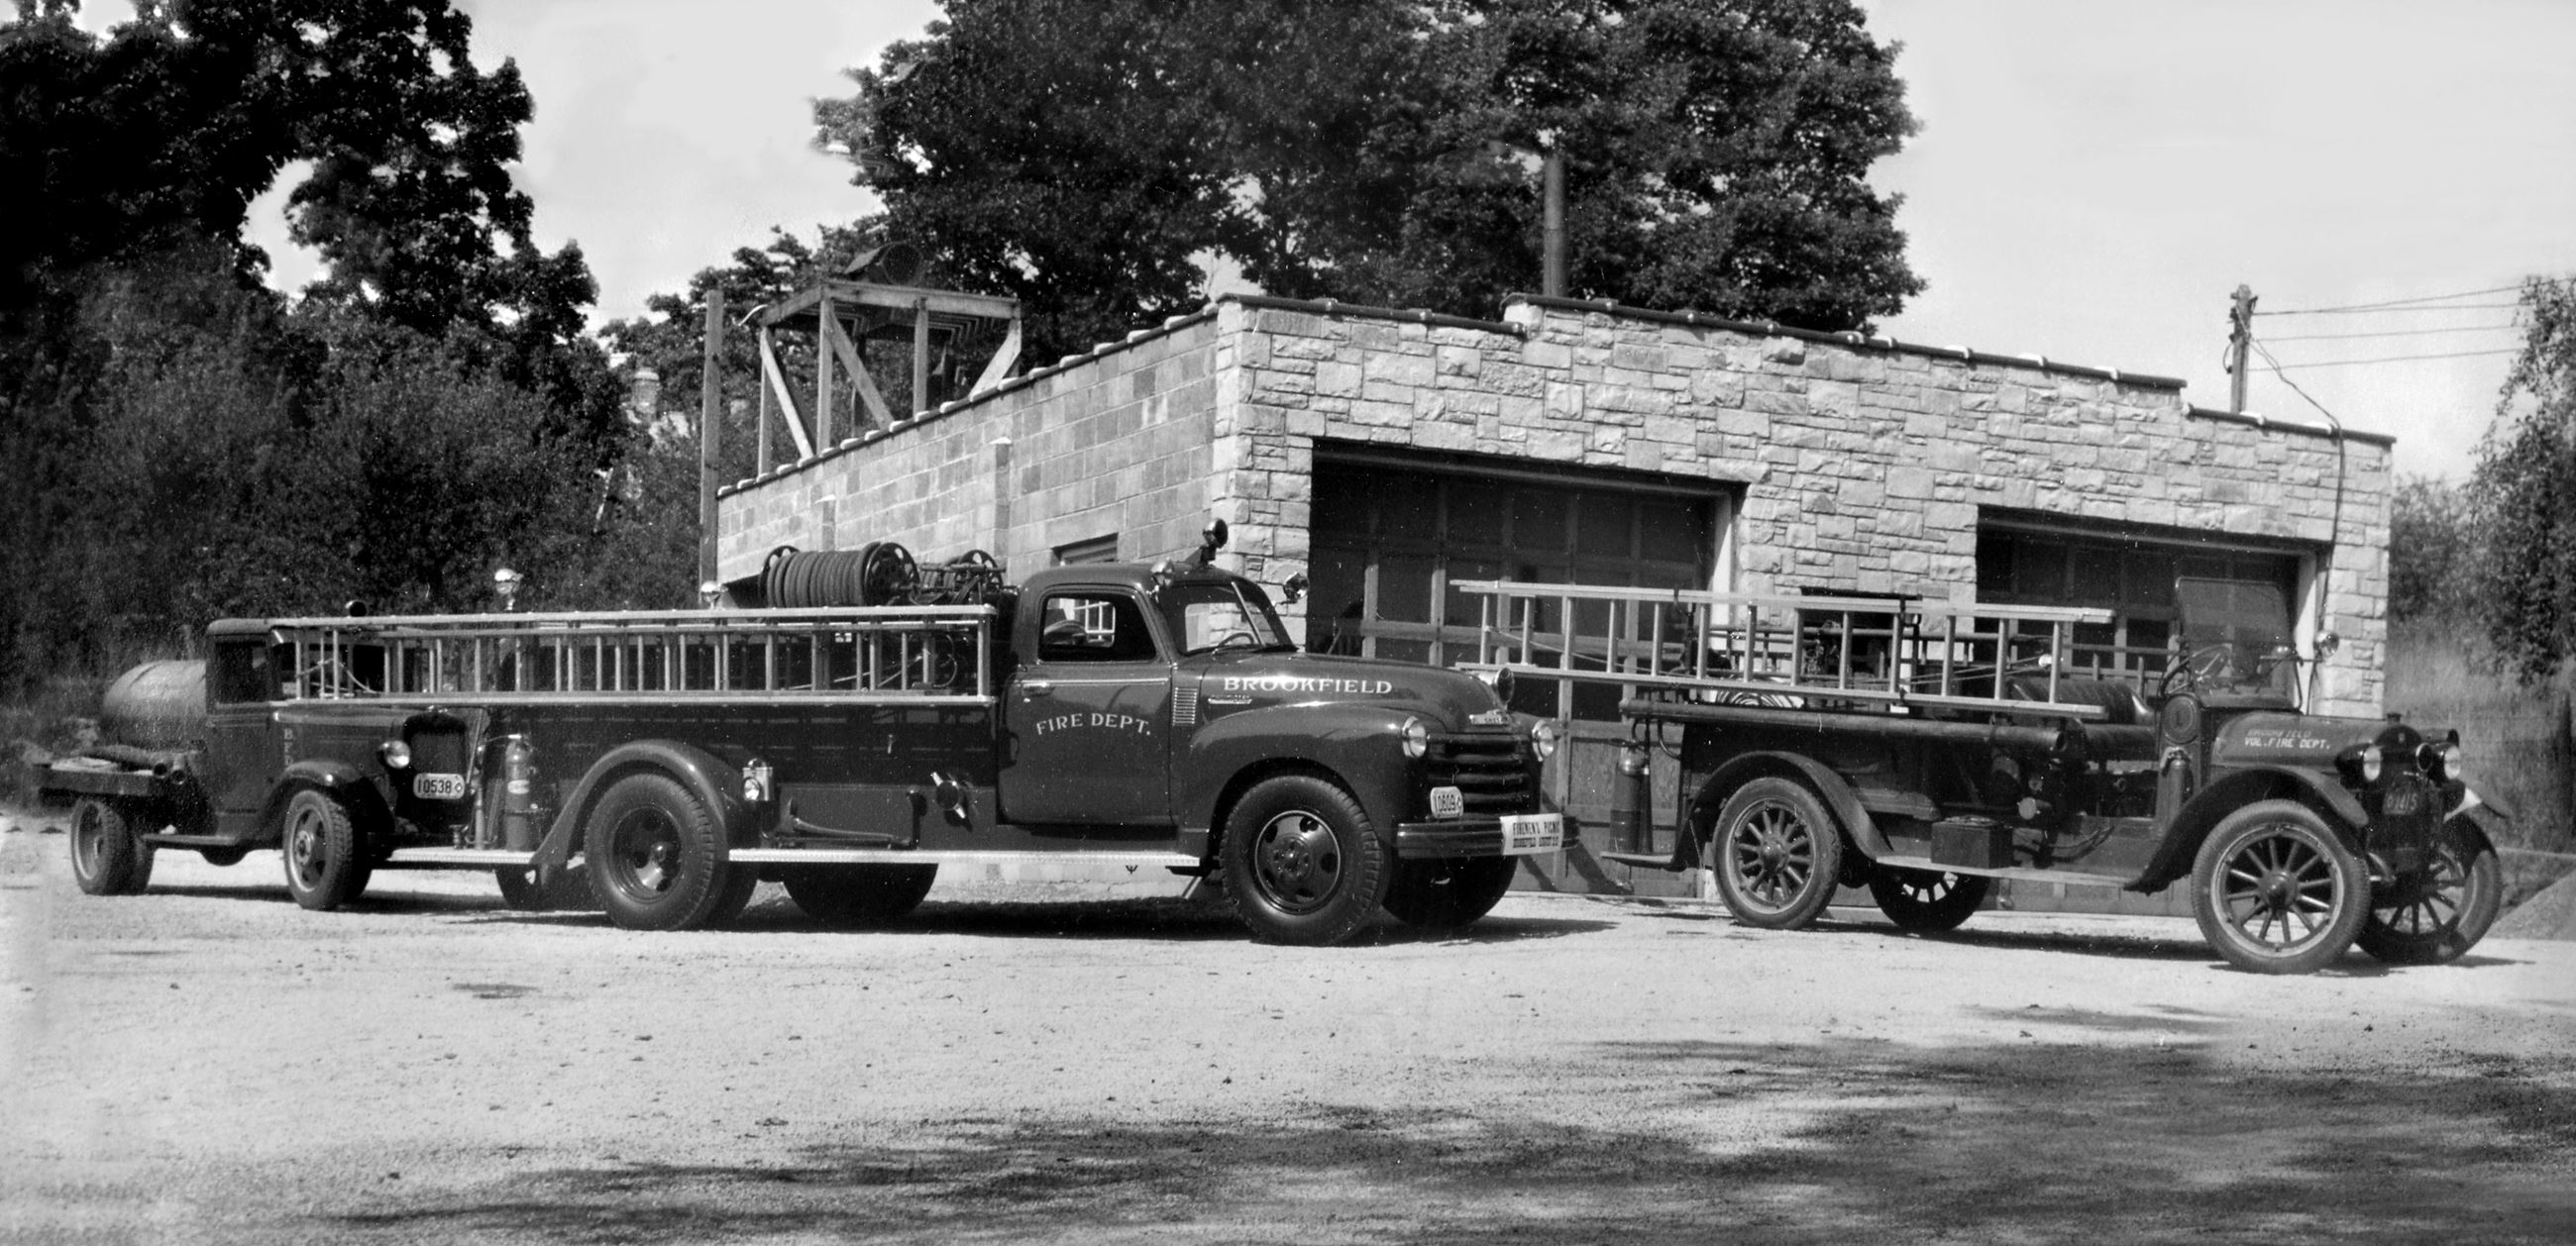 1947 Fire Station and Trucks - BW